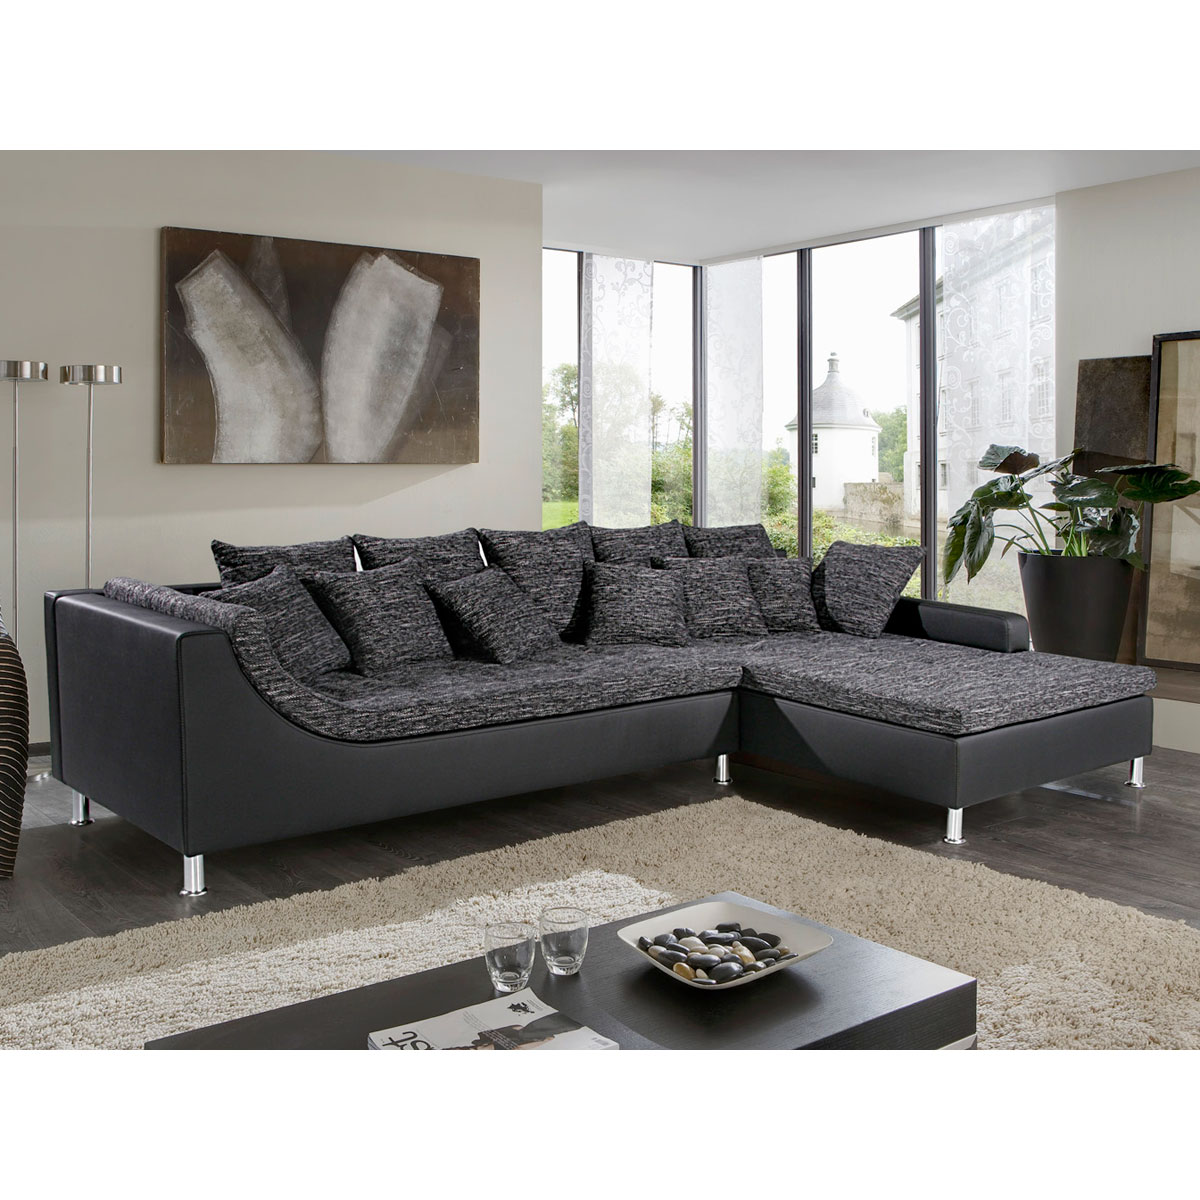 wohnlandschaft montego ecksofa sofa couch mit ottomane mit. Black Bedroom Furniture Sets. Home Design Ideas